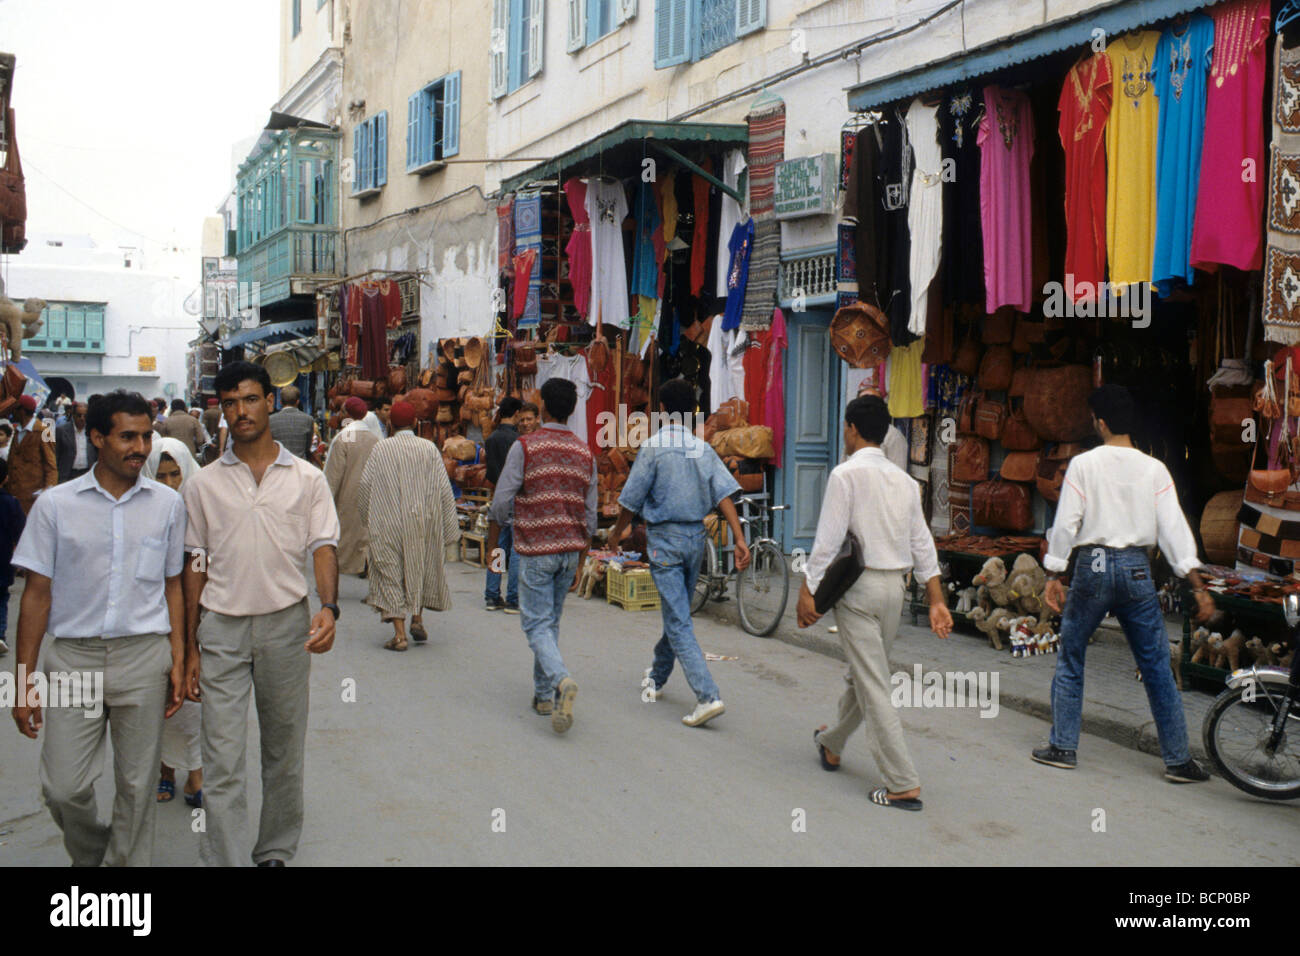 tunisia Daily life in the centre of Kairouan - Stock Image